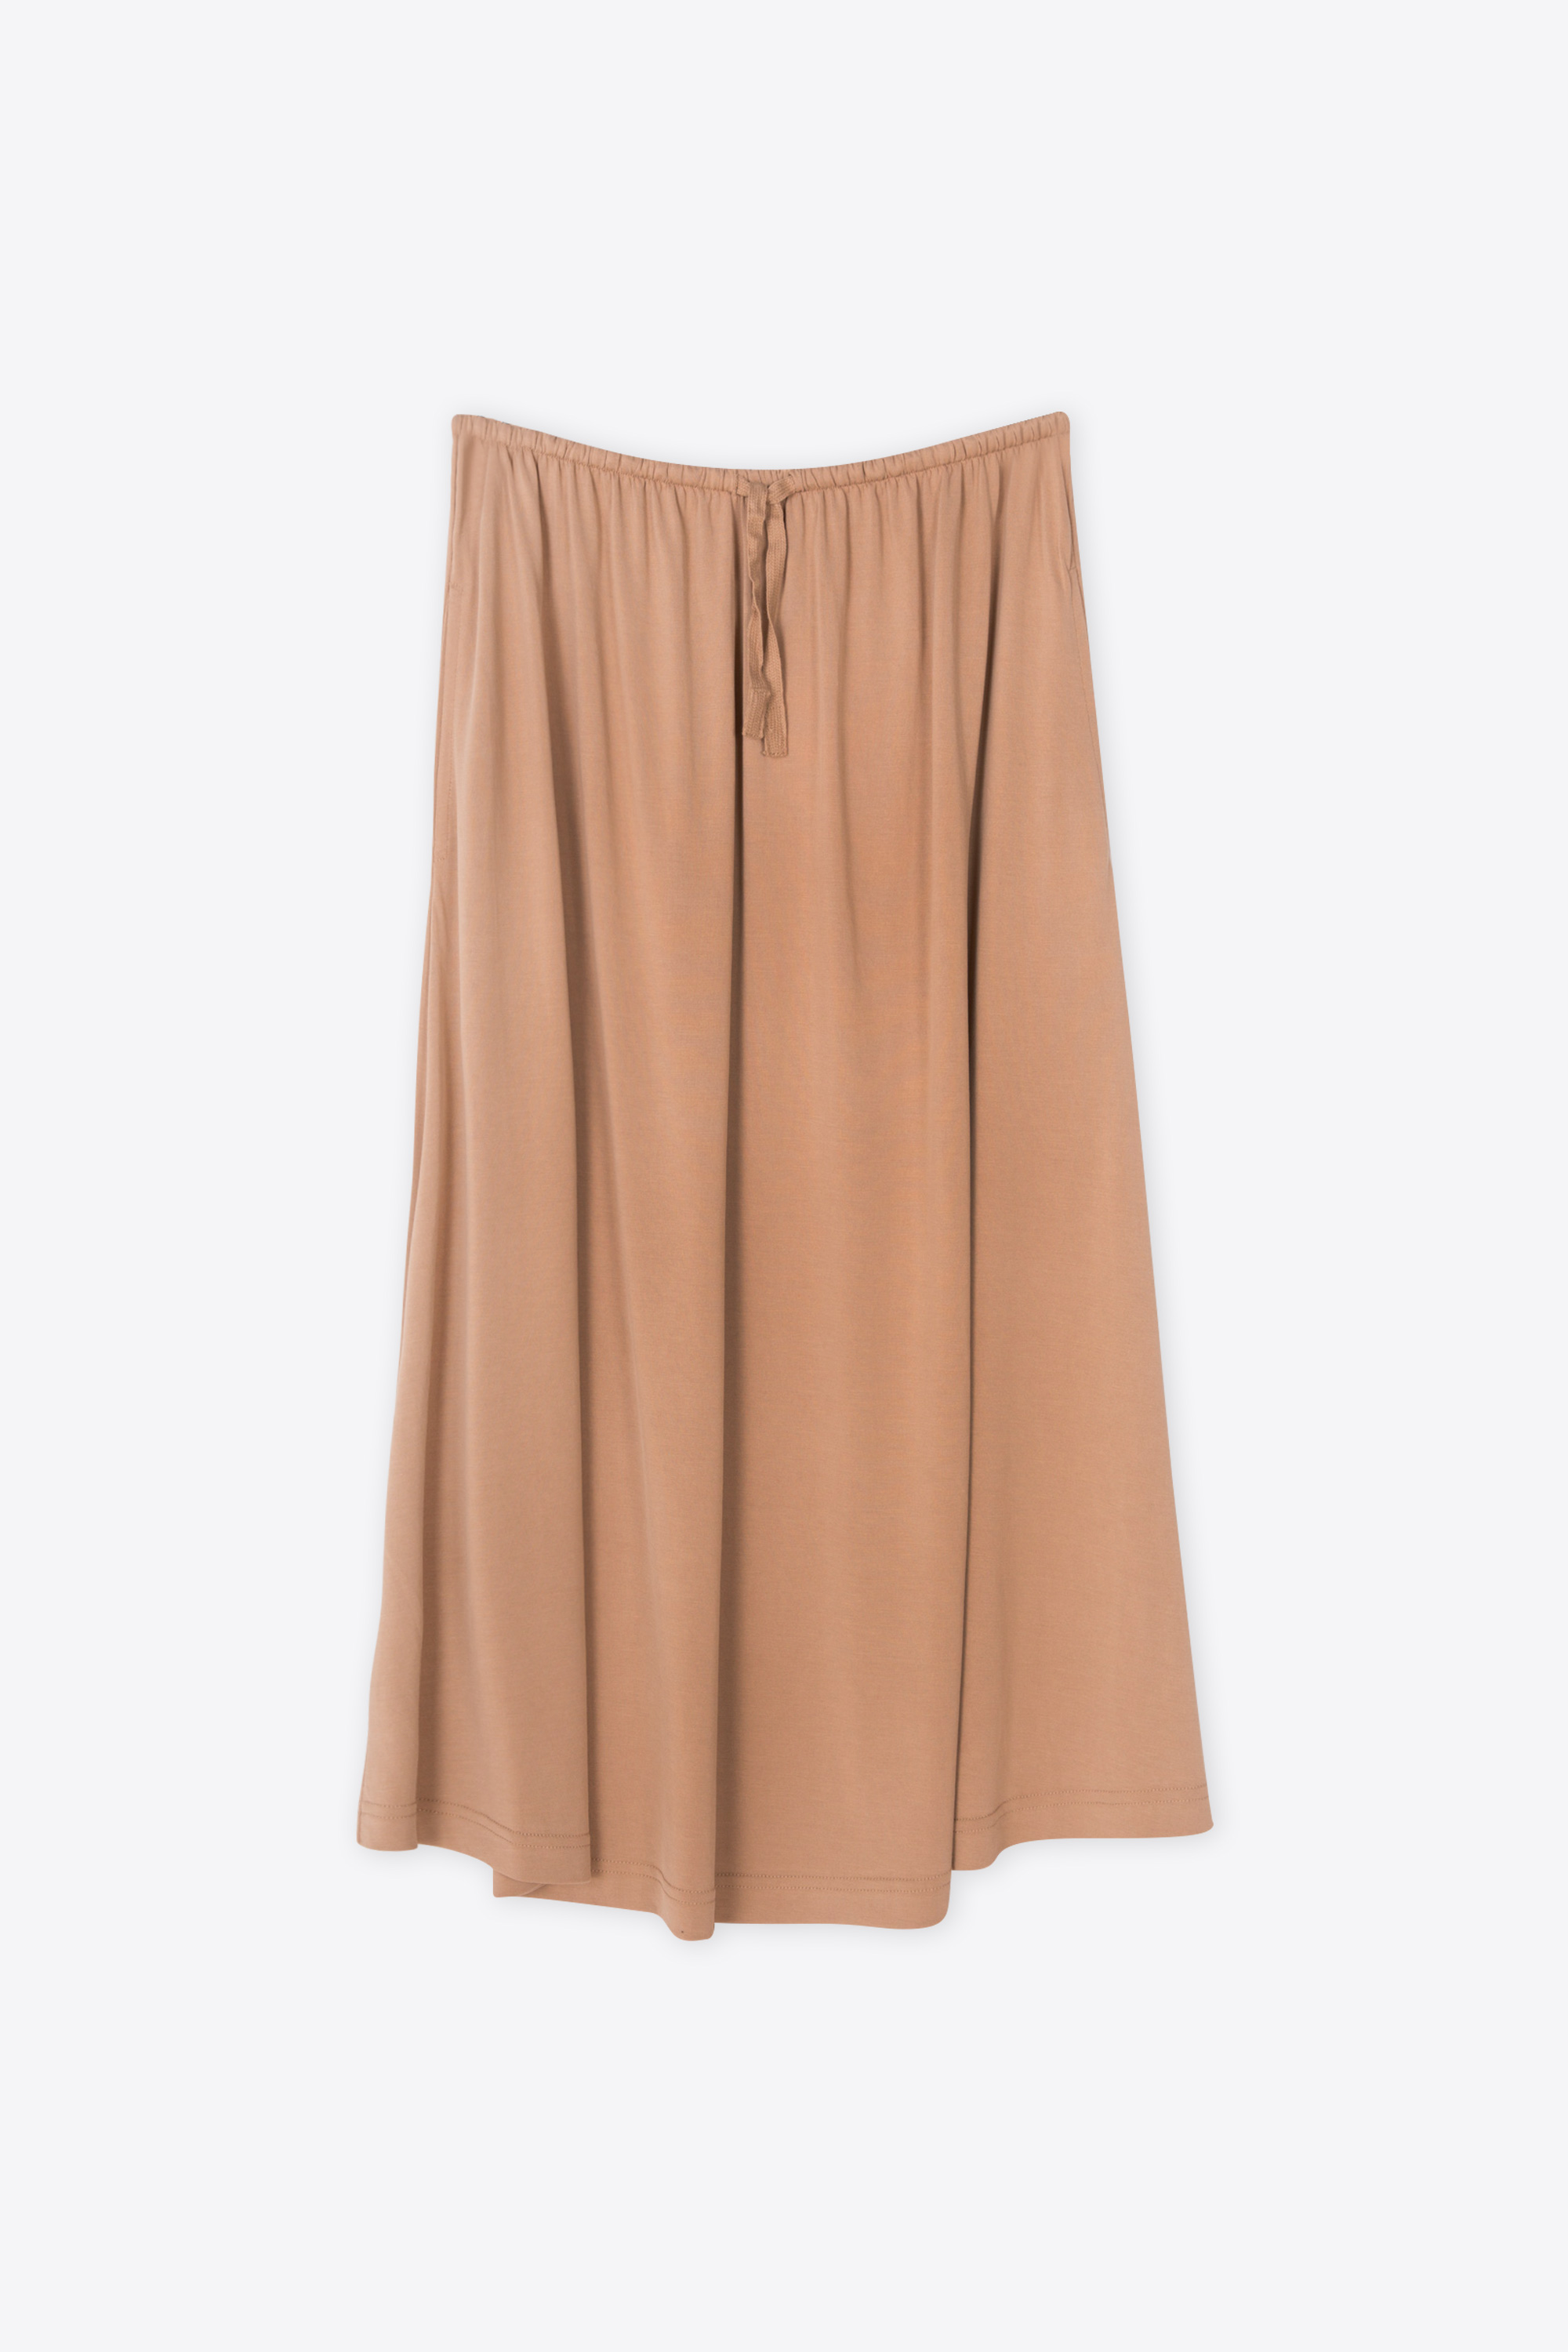 Skirt 2717 Brown 8